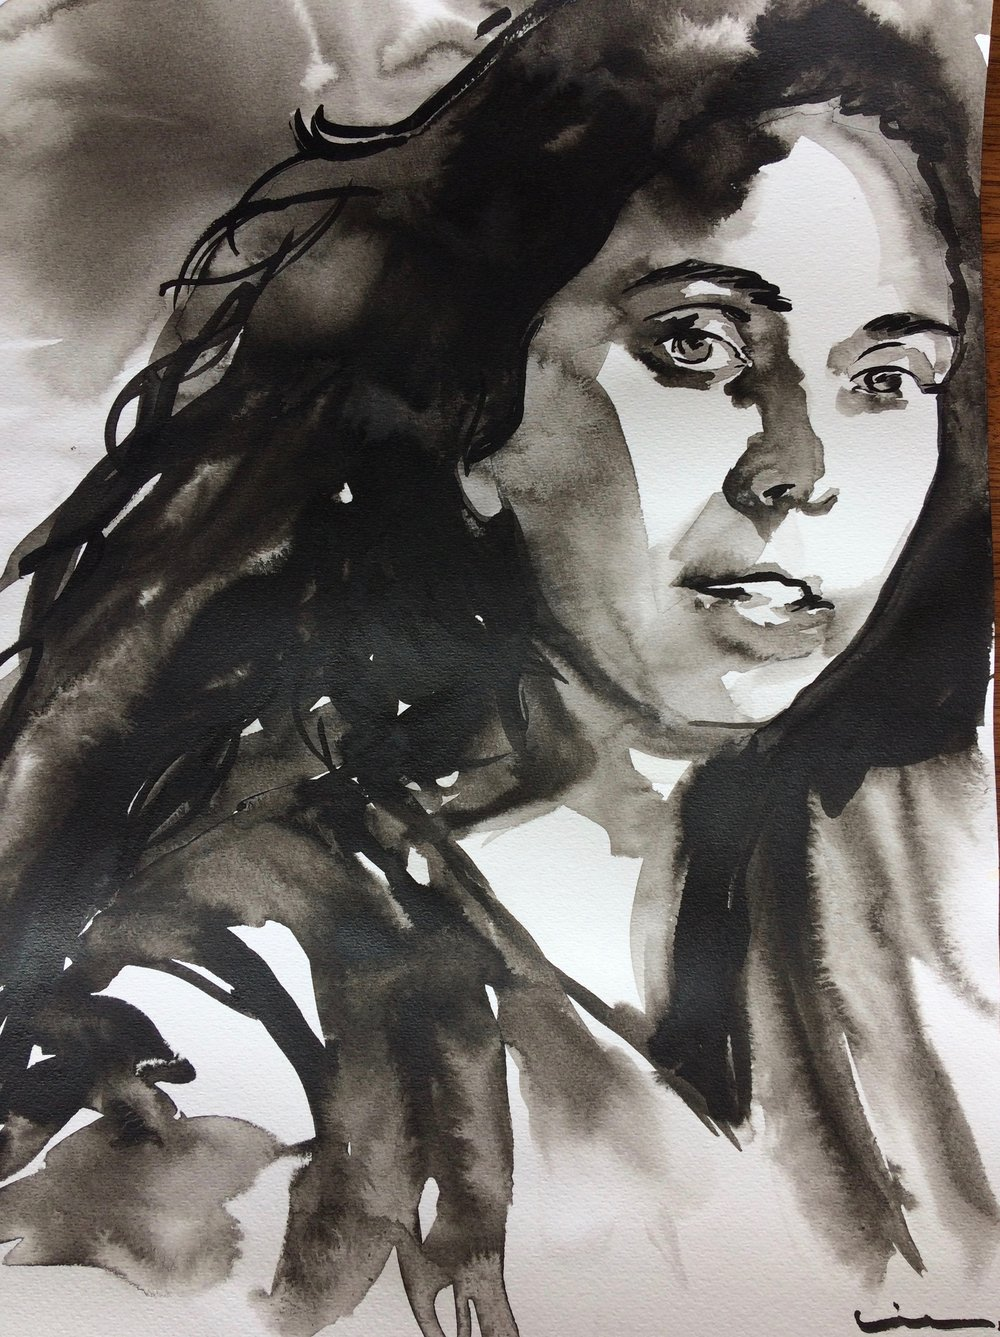 Gaga. Indian Ink on watercolor paper, (230g/m2), A3 (42x29,7 cm). Available.